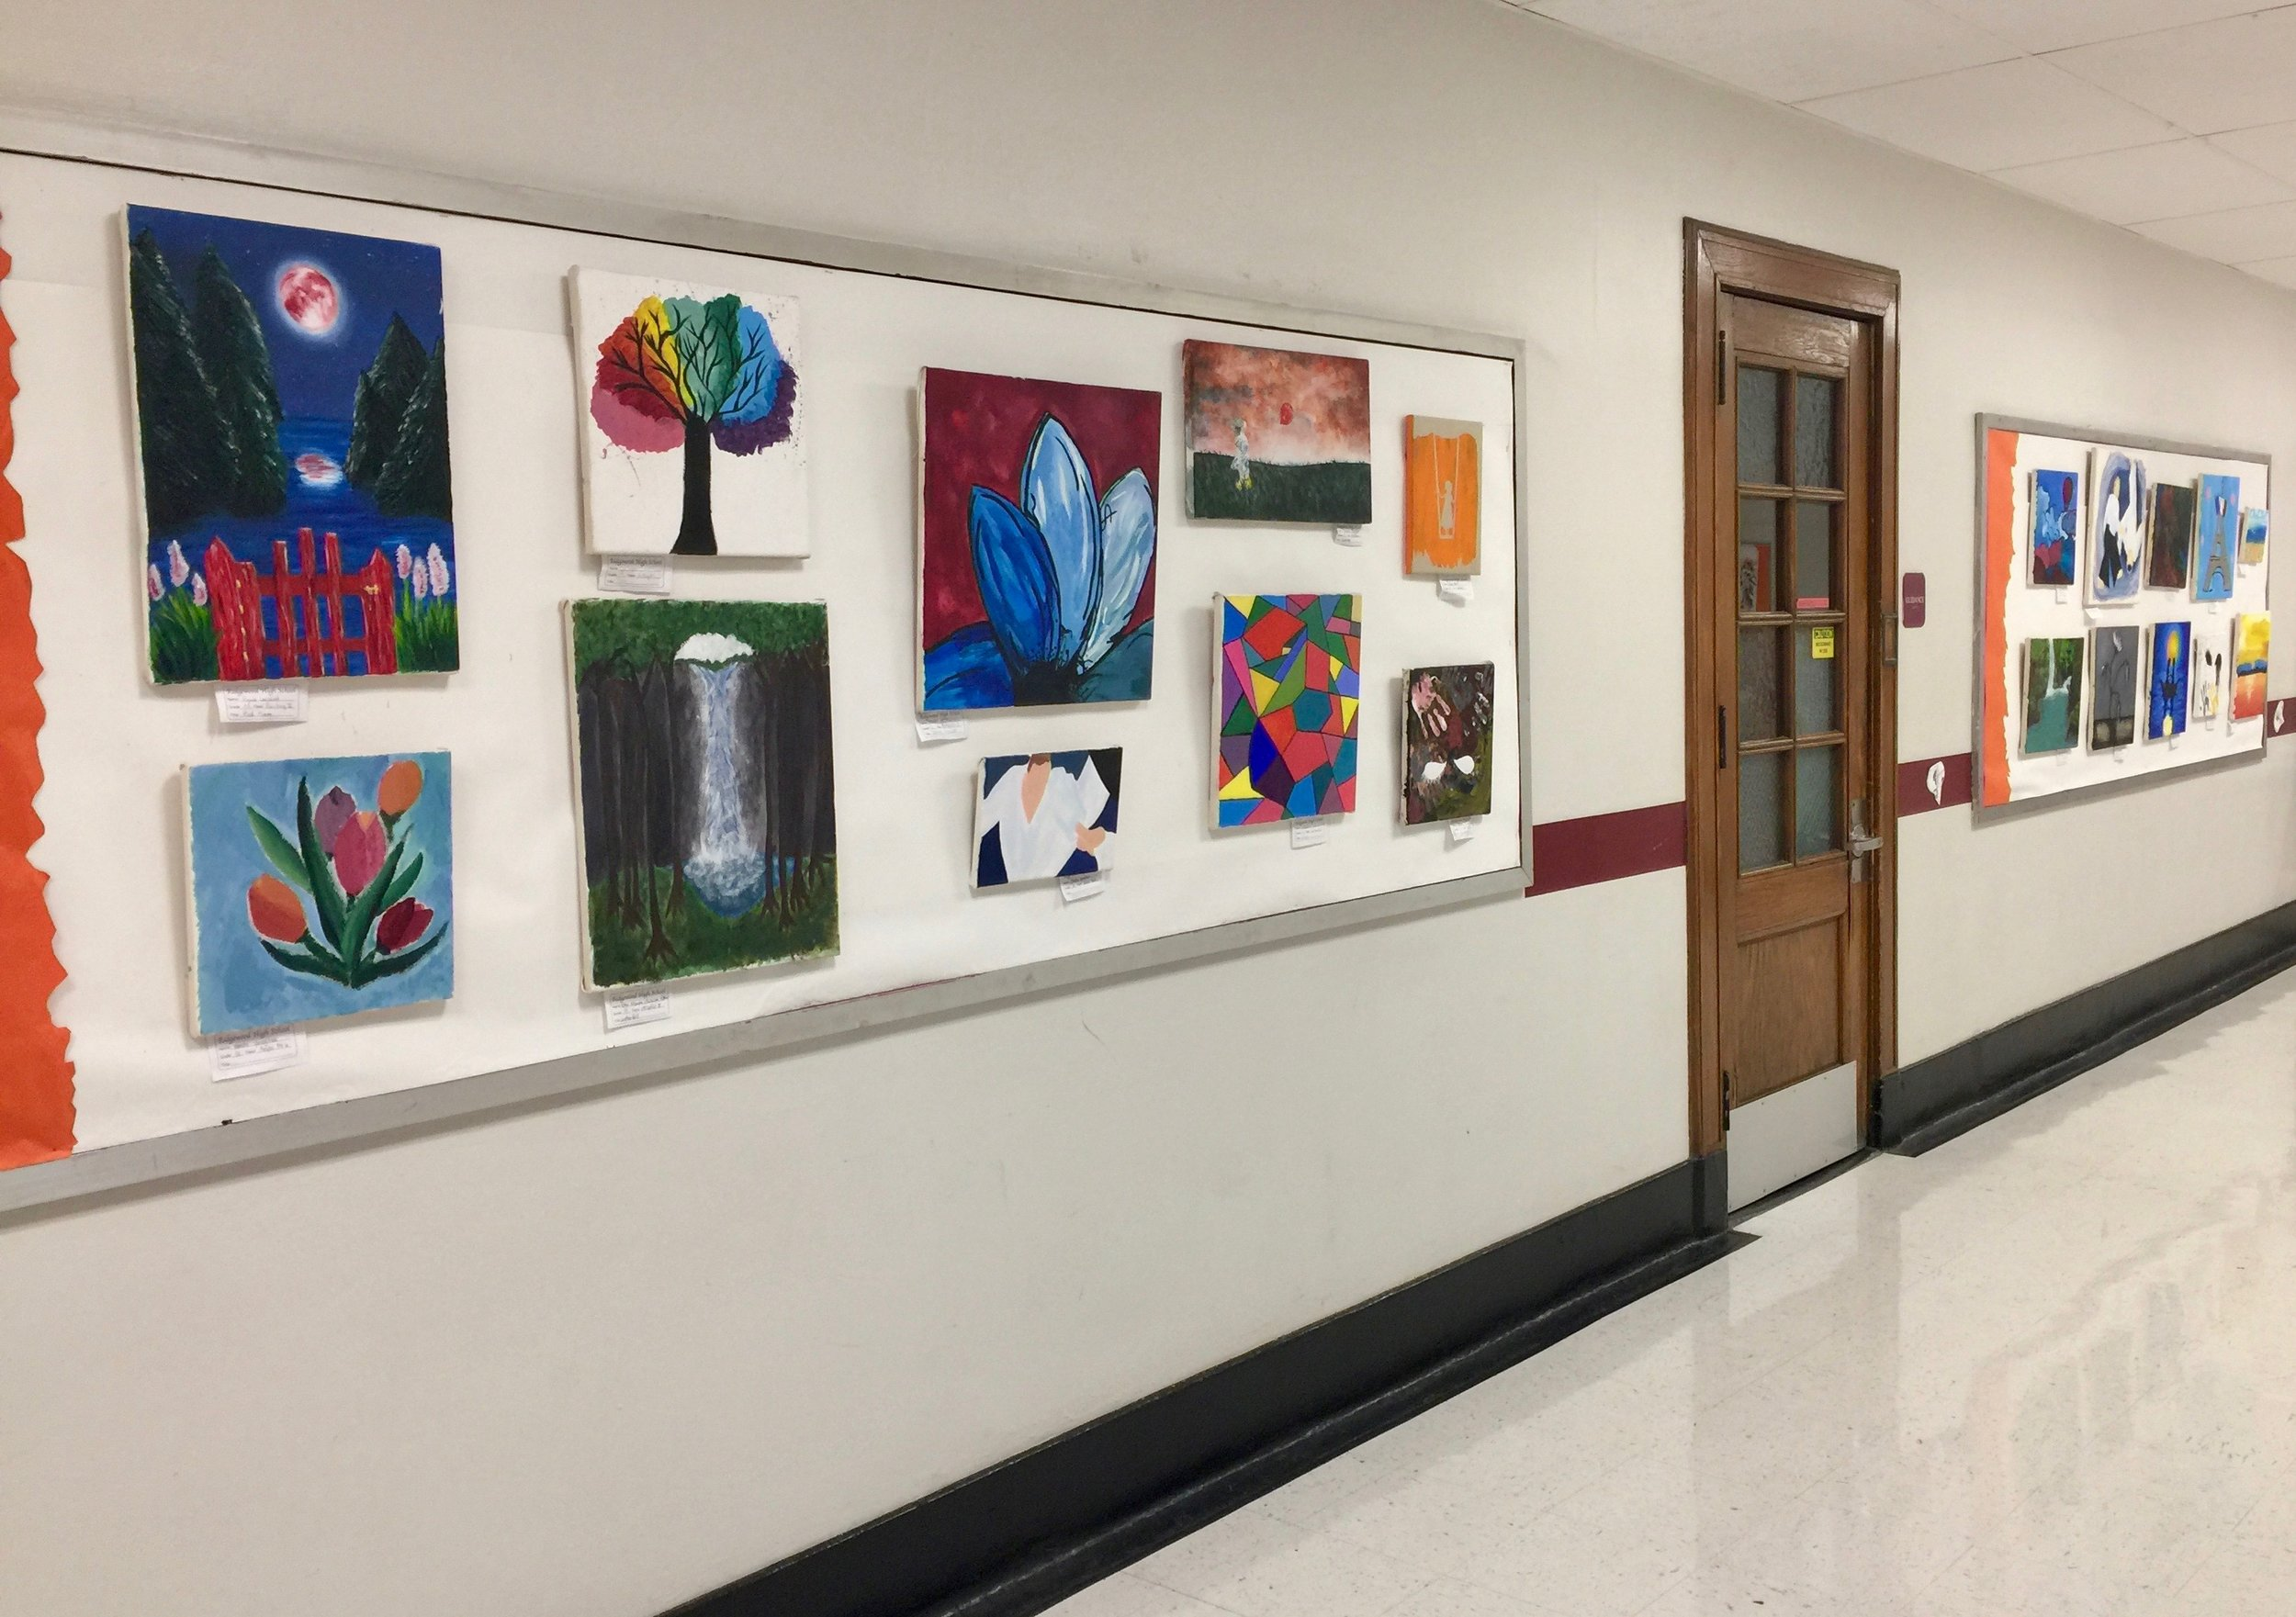 Installation View of Ridgewood High School's Celebration of the Arts Exhibition, 2018